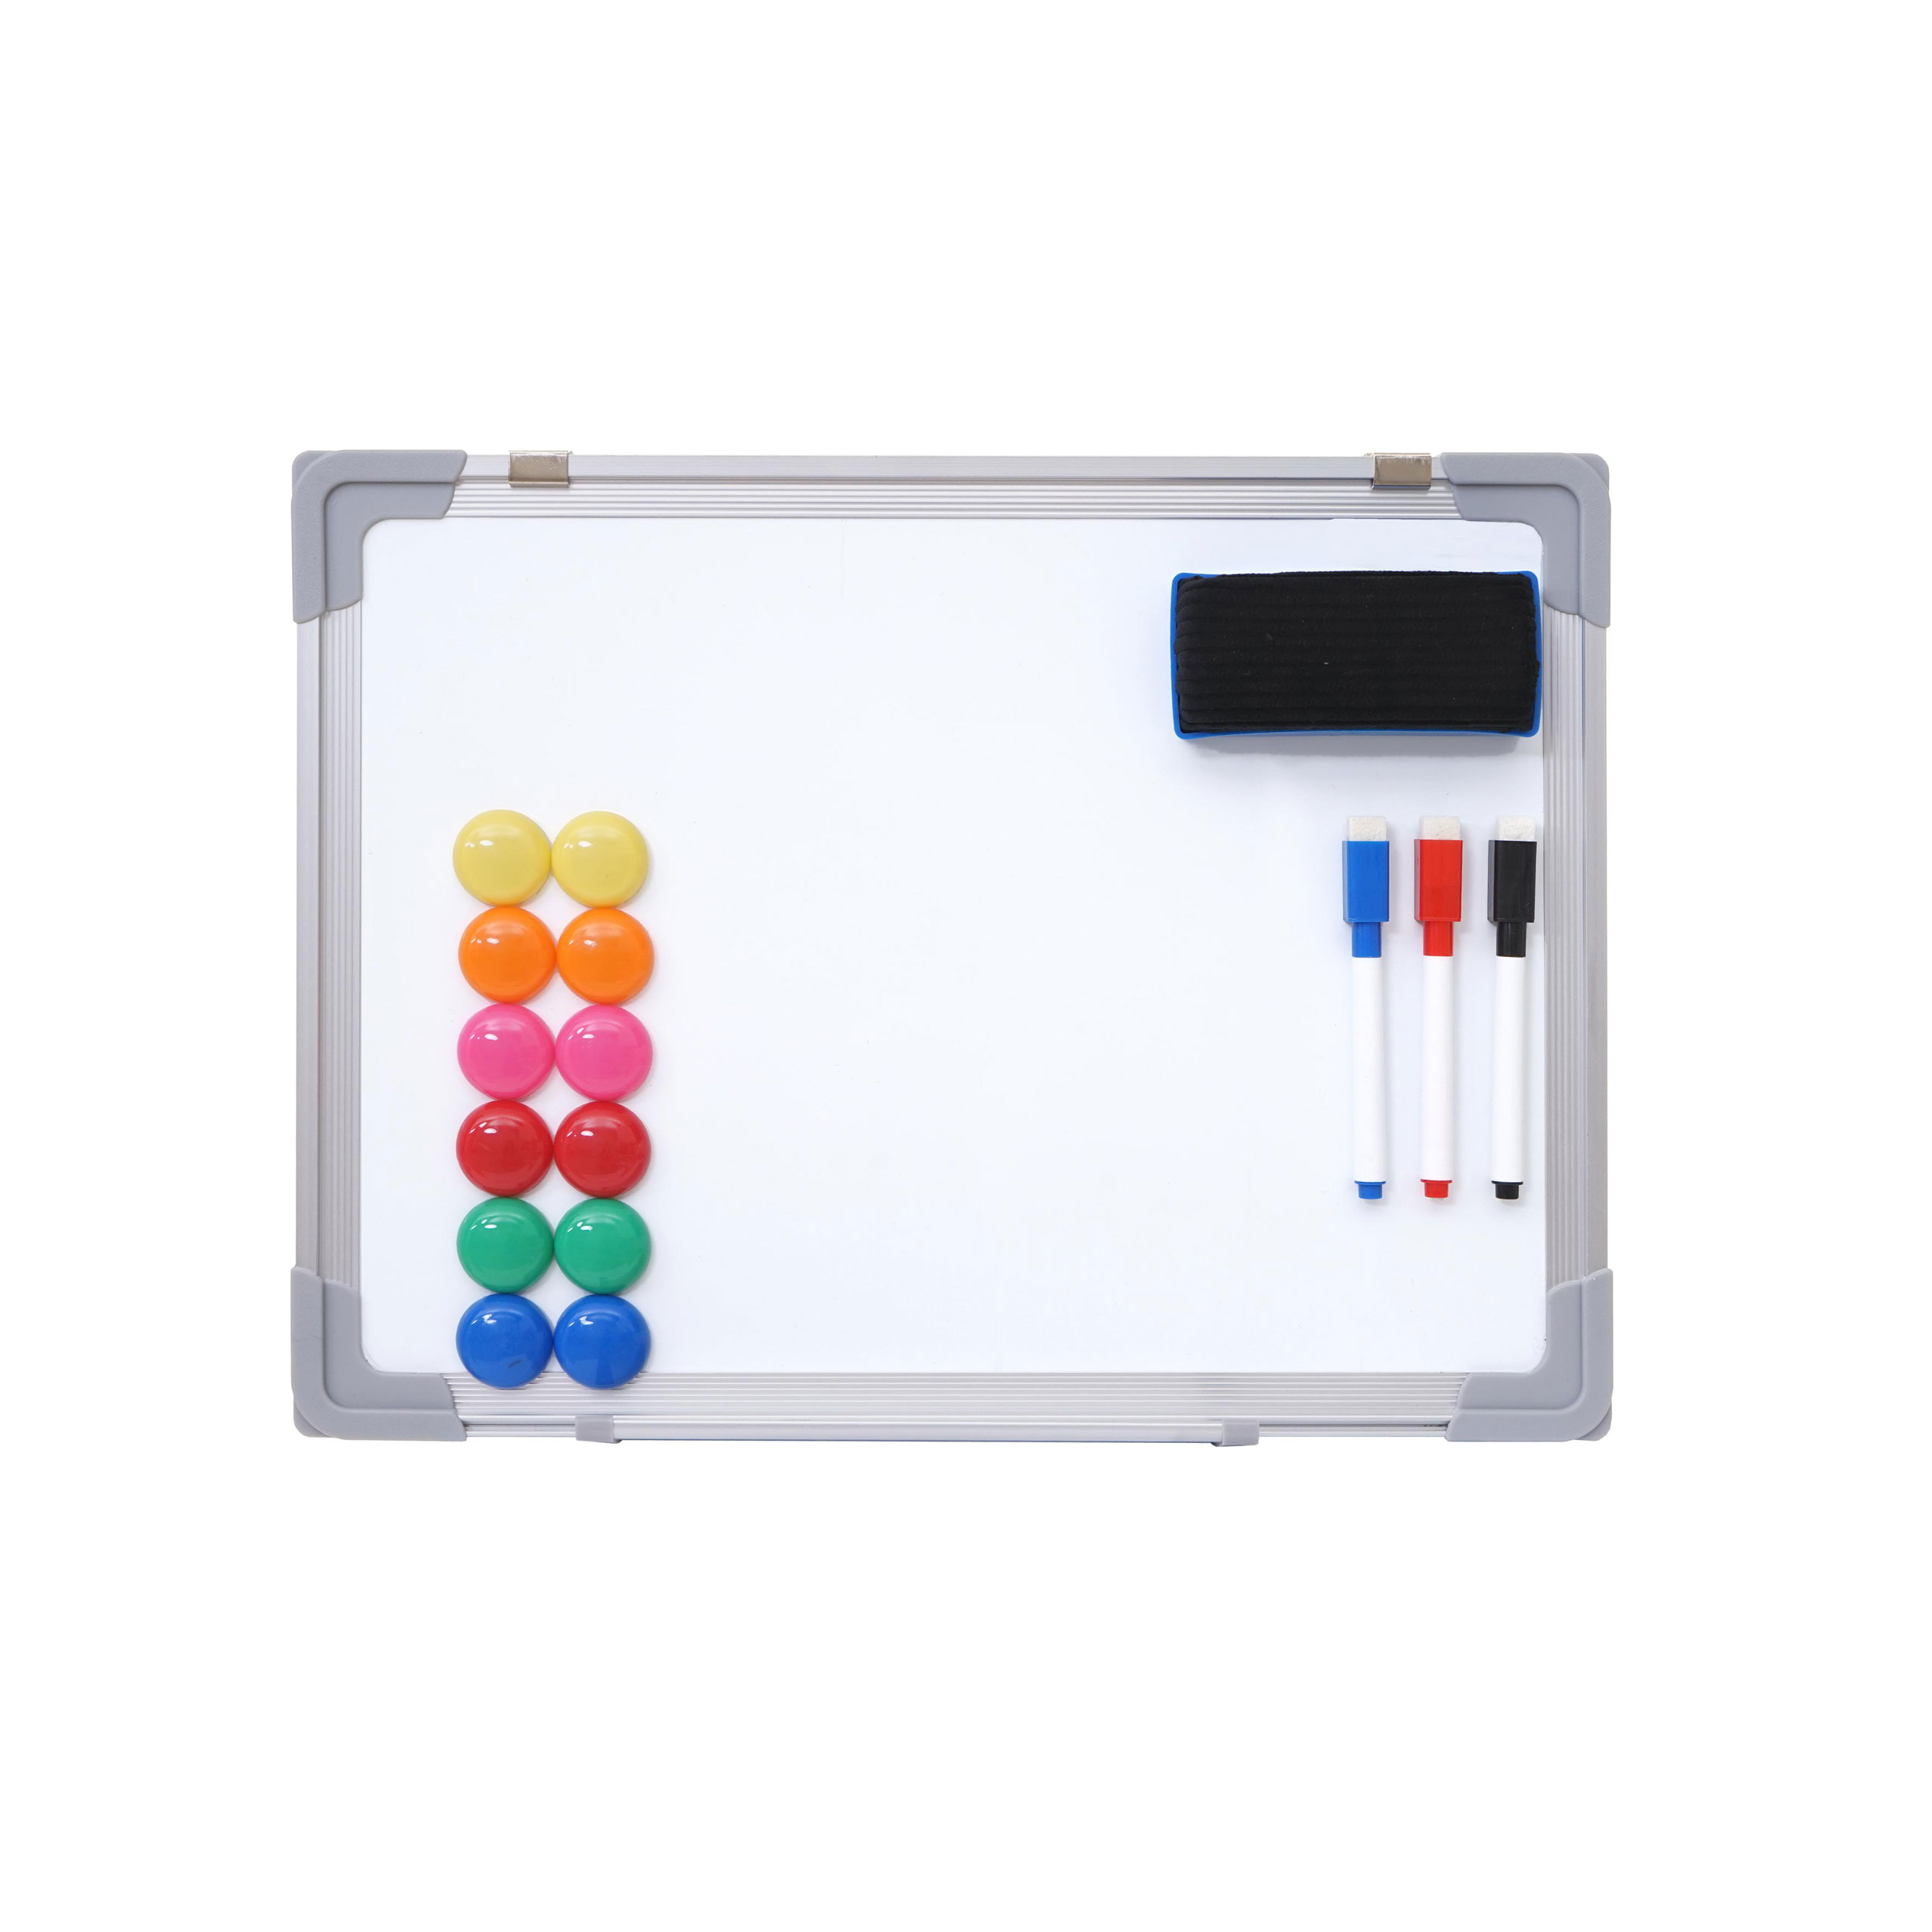 Mobile Pinnwand Whiteboard Mcw C85 Magnettafel Memoboard Pinnwand Mobil